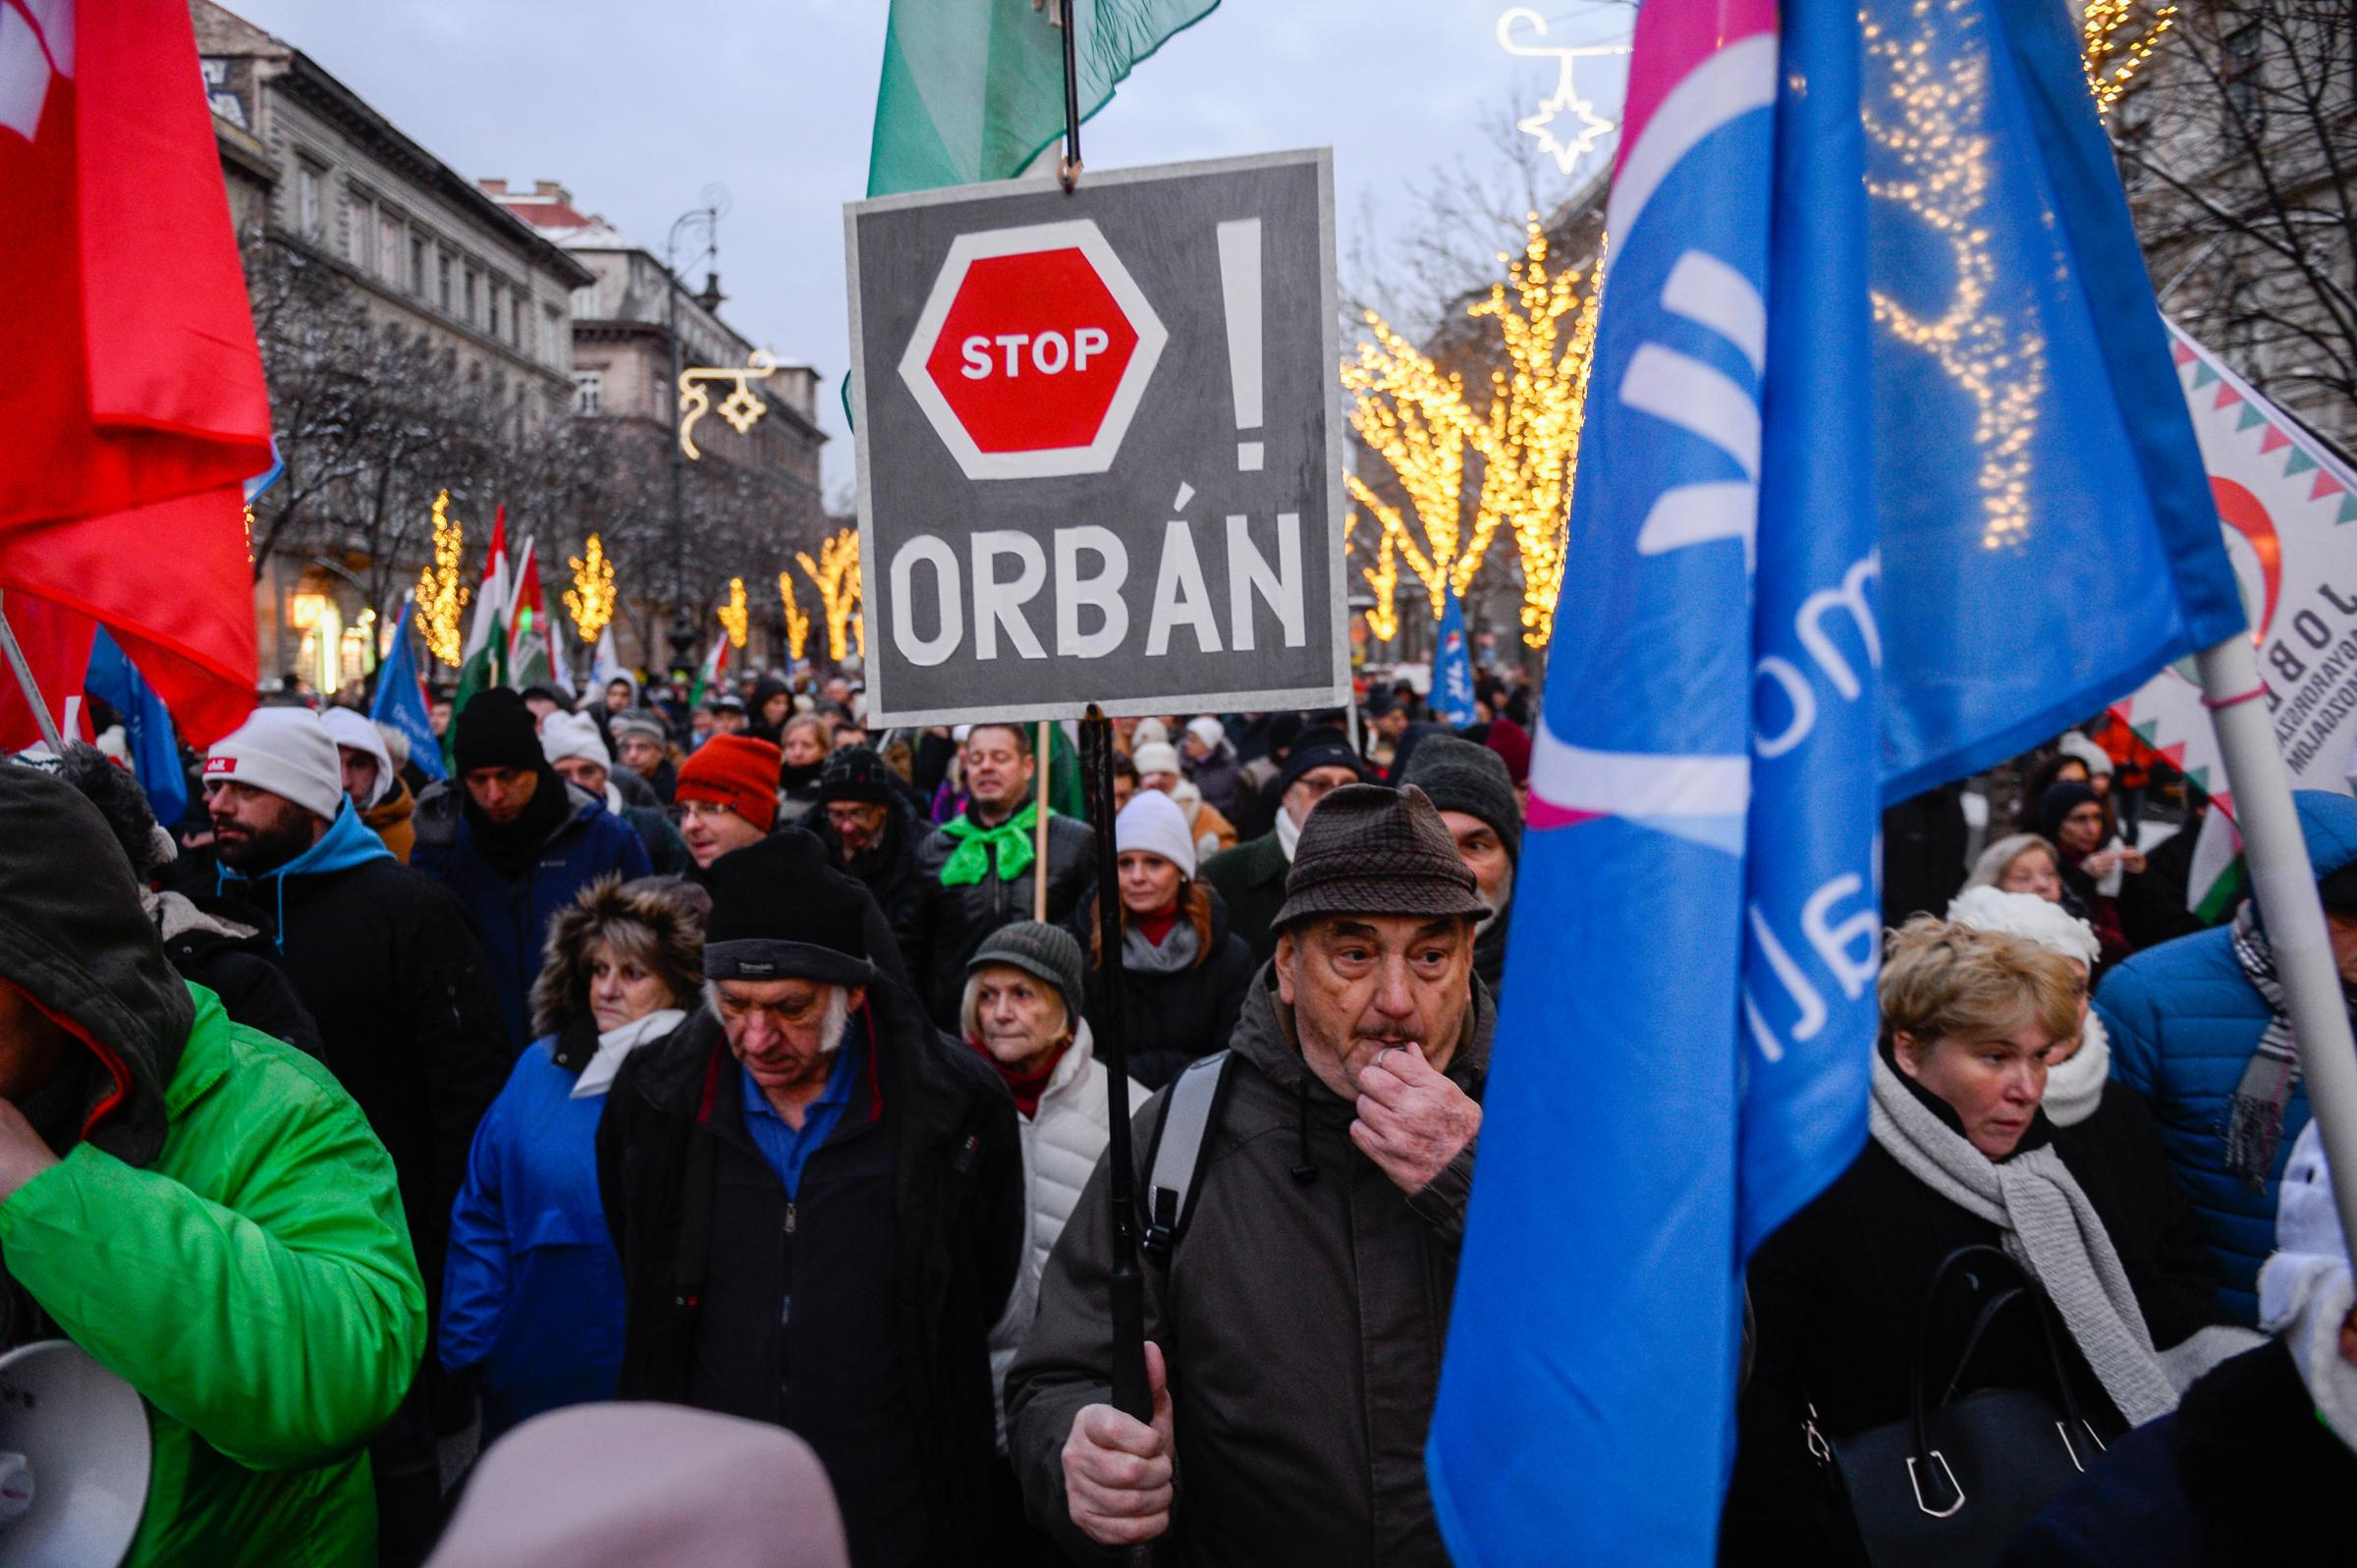 Hungarians took to the streets to oppose autocratic prime minister Viktor Orban